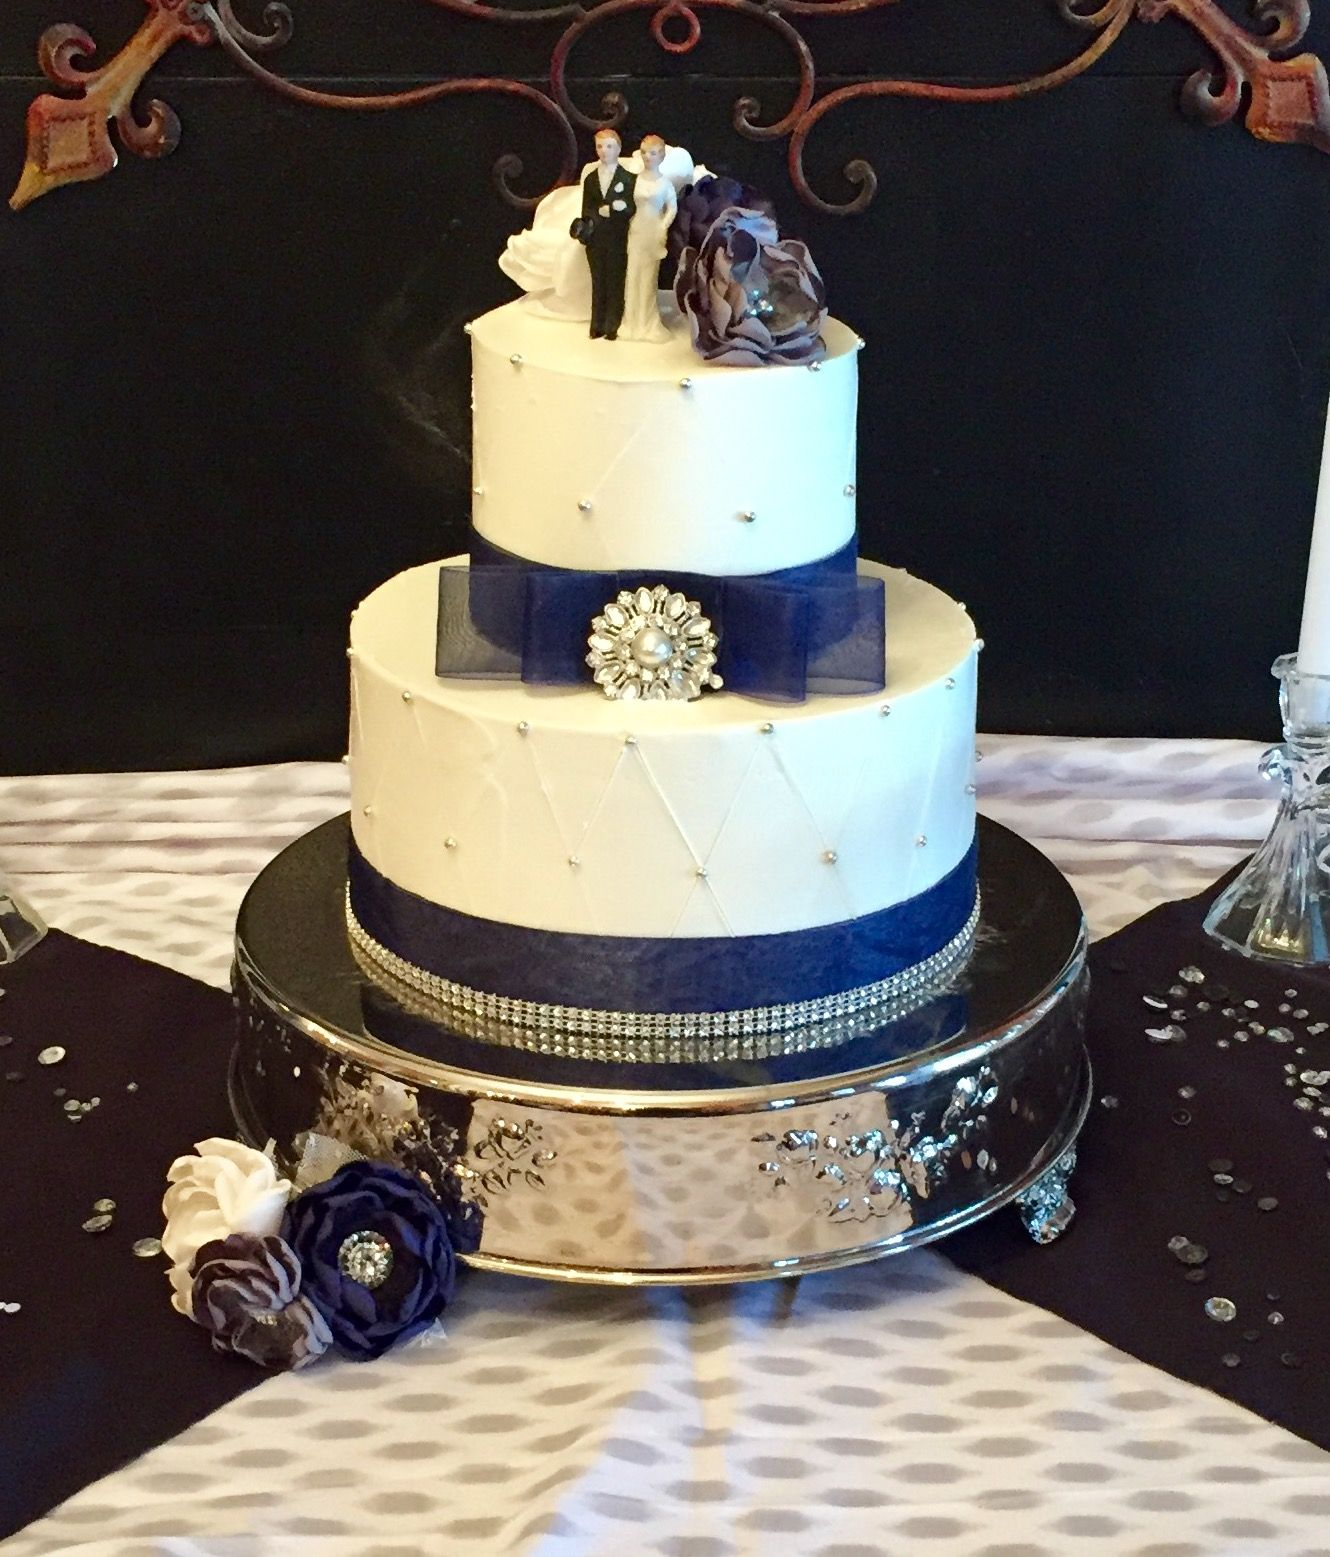 Simple Buttercream Wedding Cake With Quilted Design Family Heirloom Porcelain Br Wedding Cakes Simple Blue Wedding Cake Navy Wedding Cake Simple Buttercream